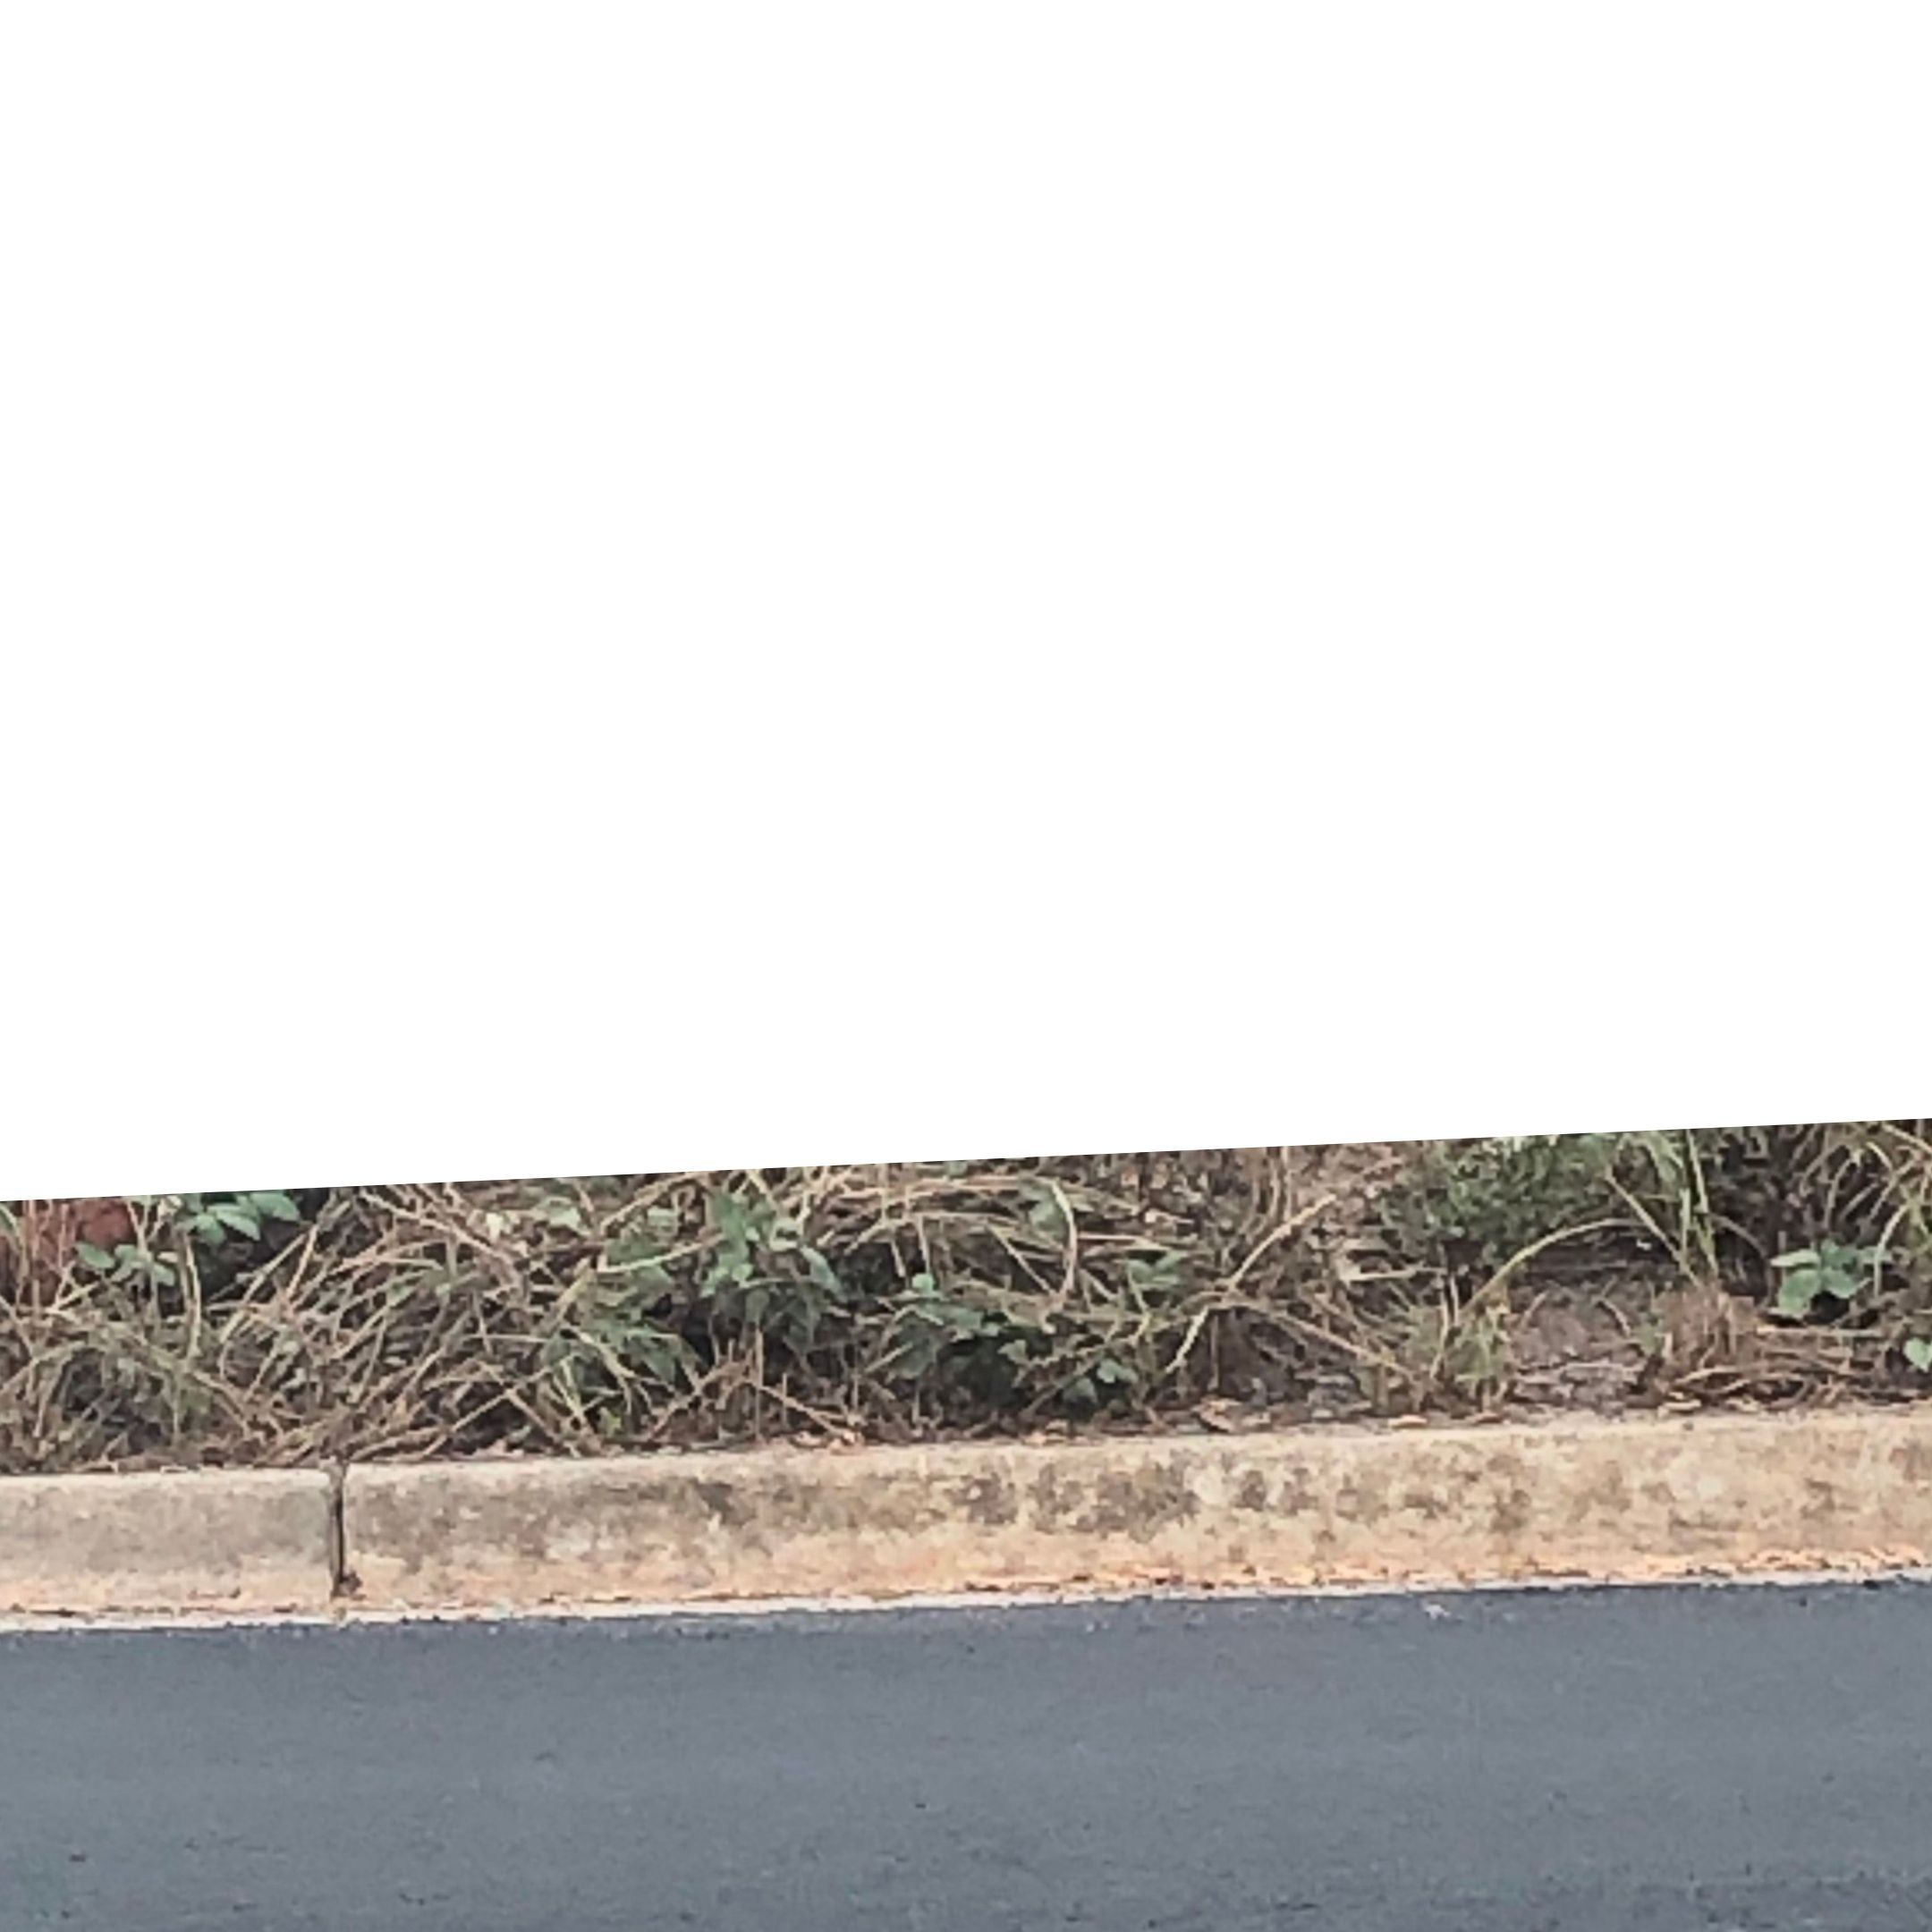 curb and weeds